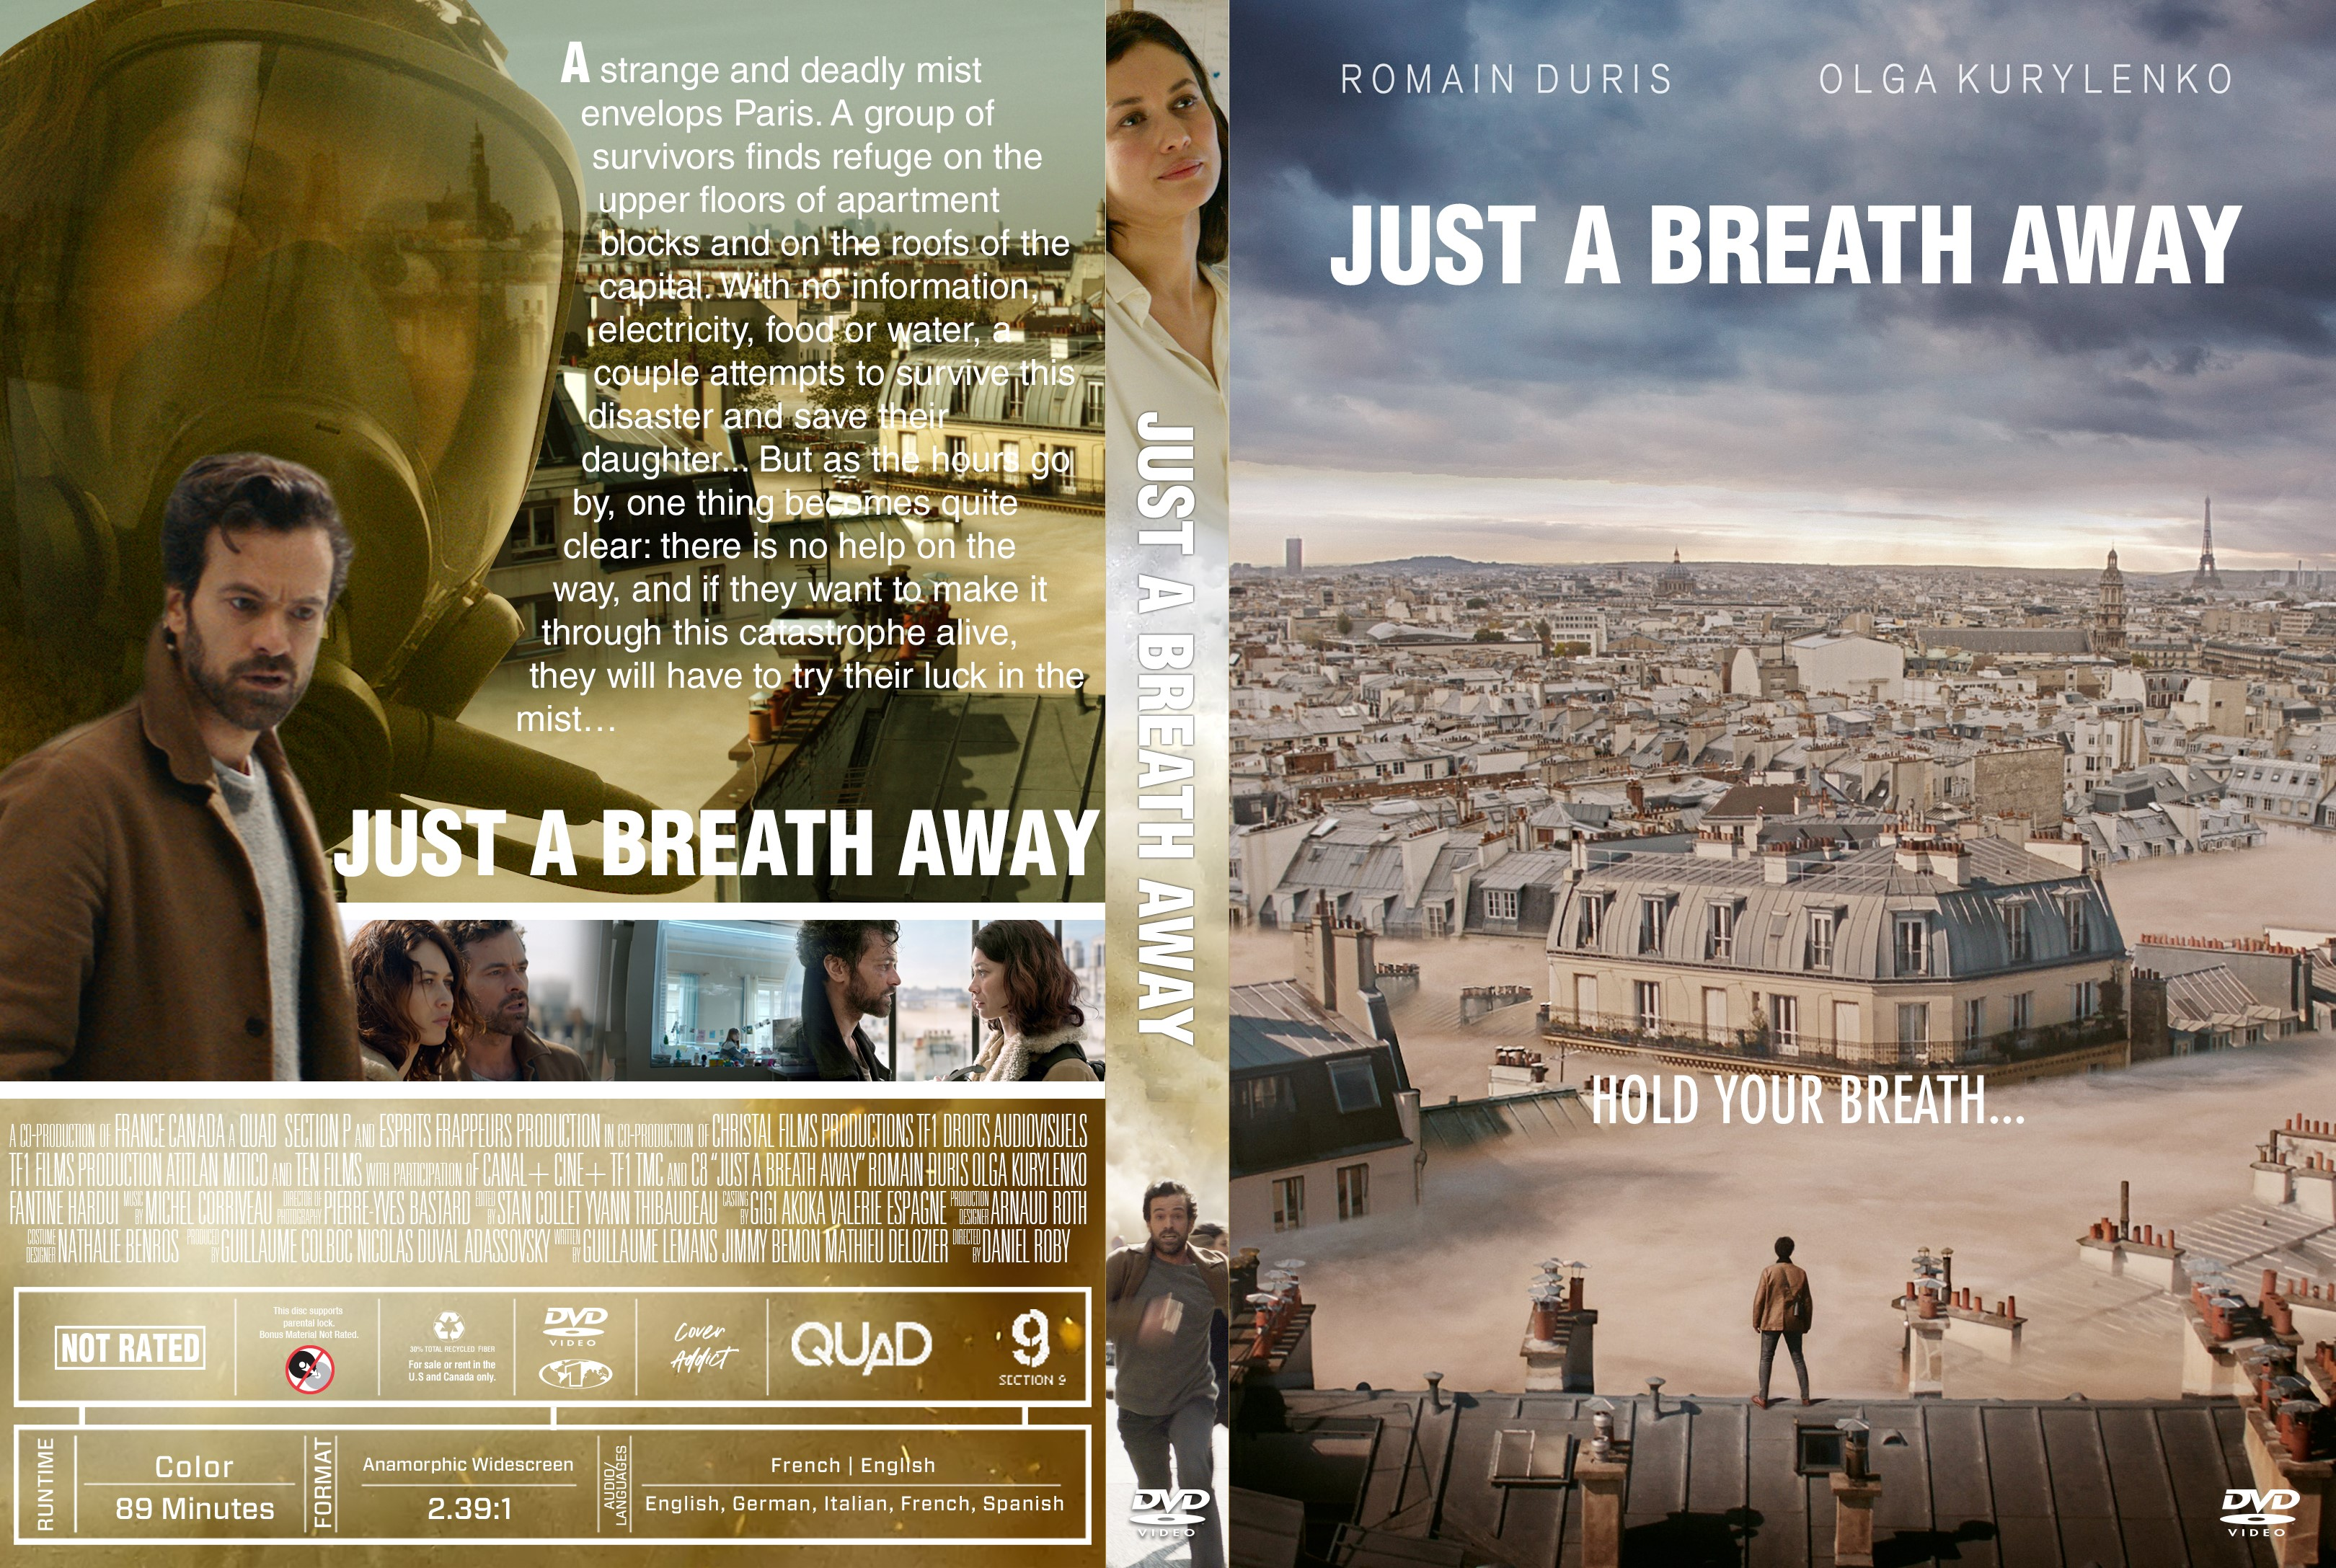 Just A Breath Away Dans La Brume Dvd Cover Cover Addict Free Dvd Bluray Covers And Movie Posters Just a Breath Away